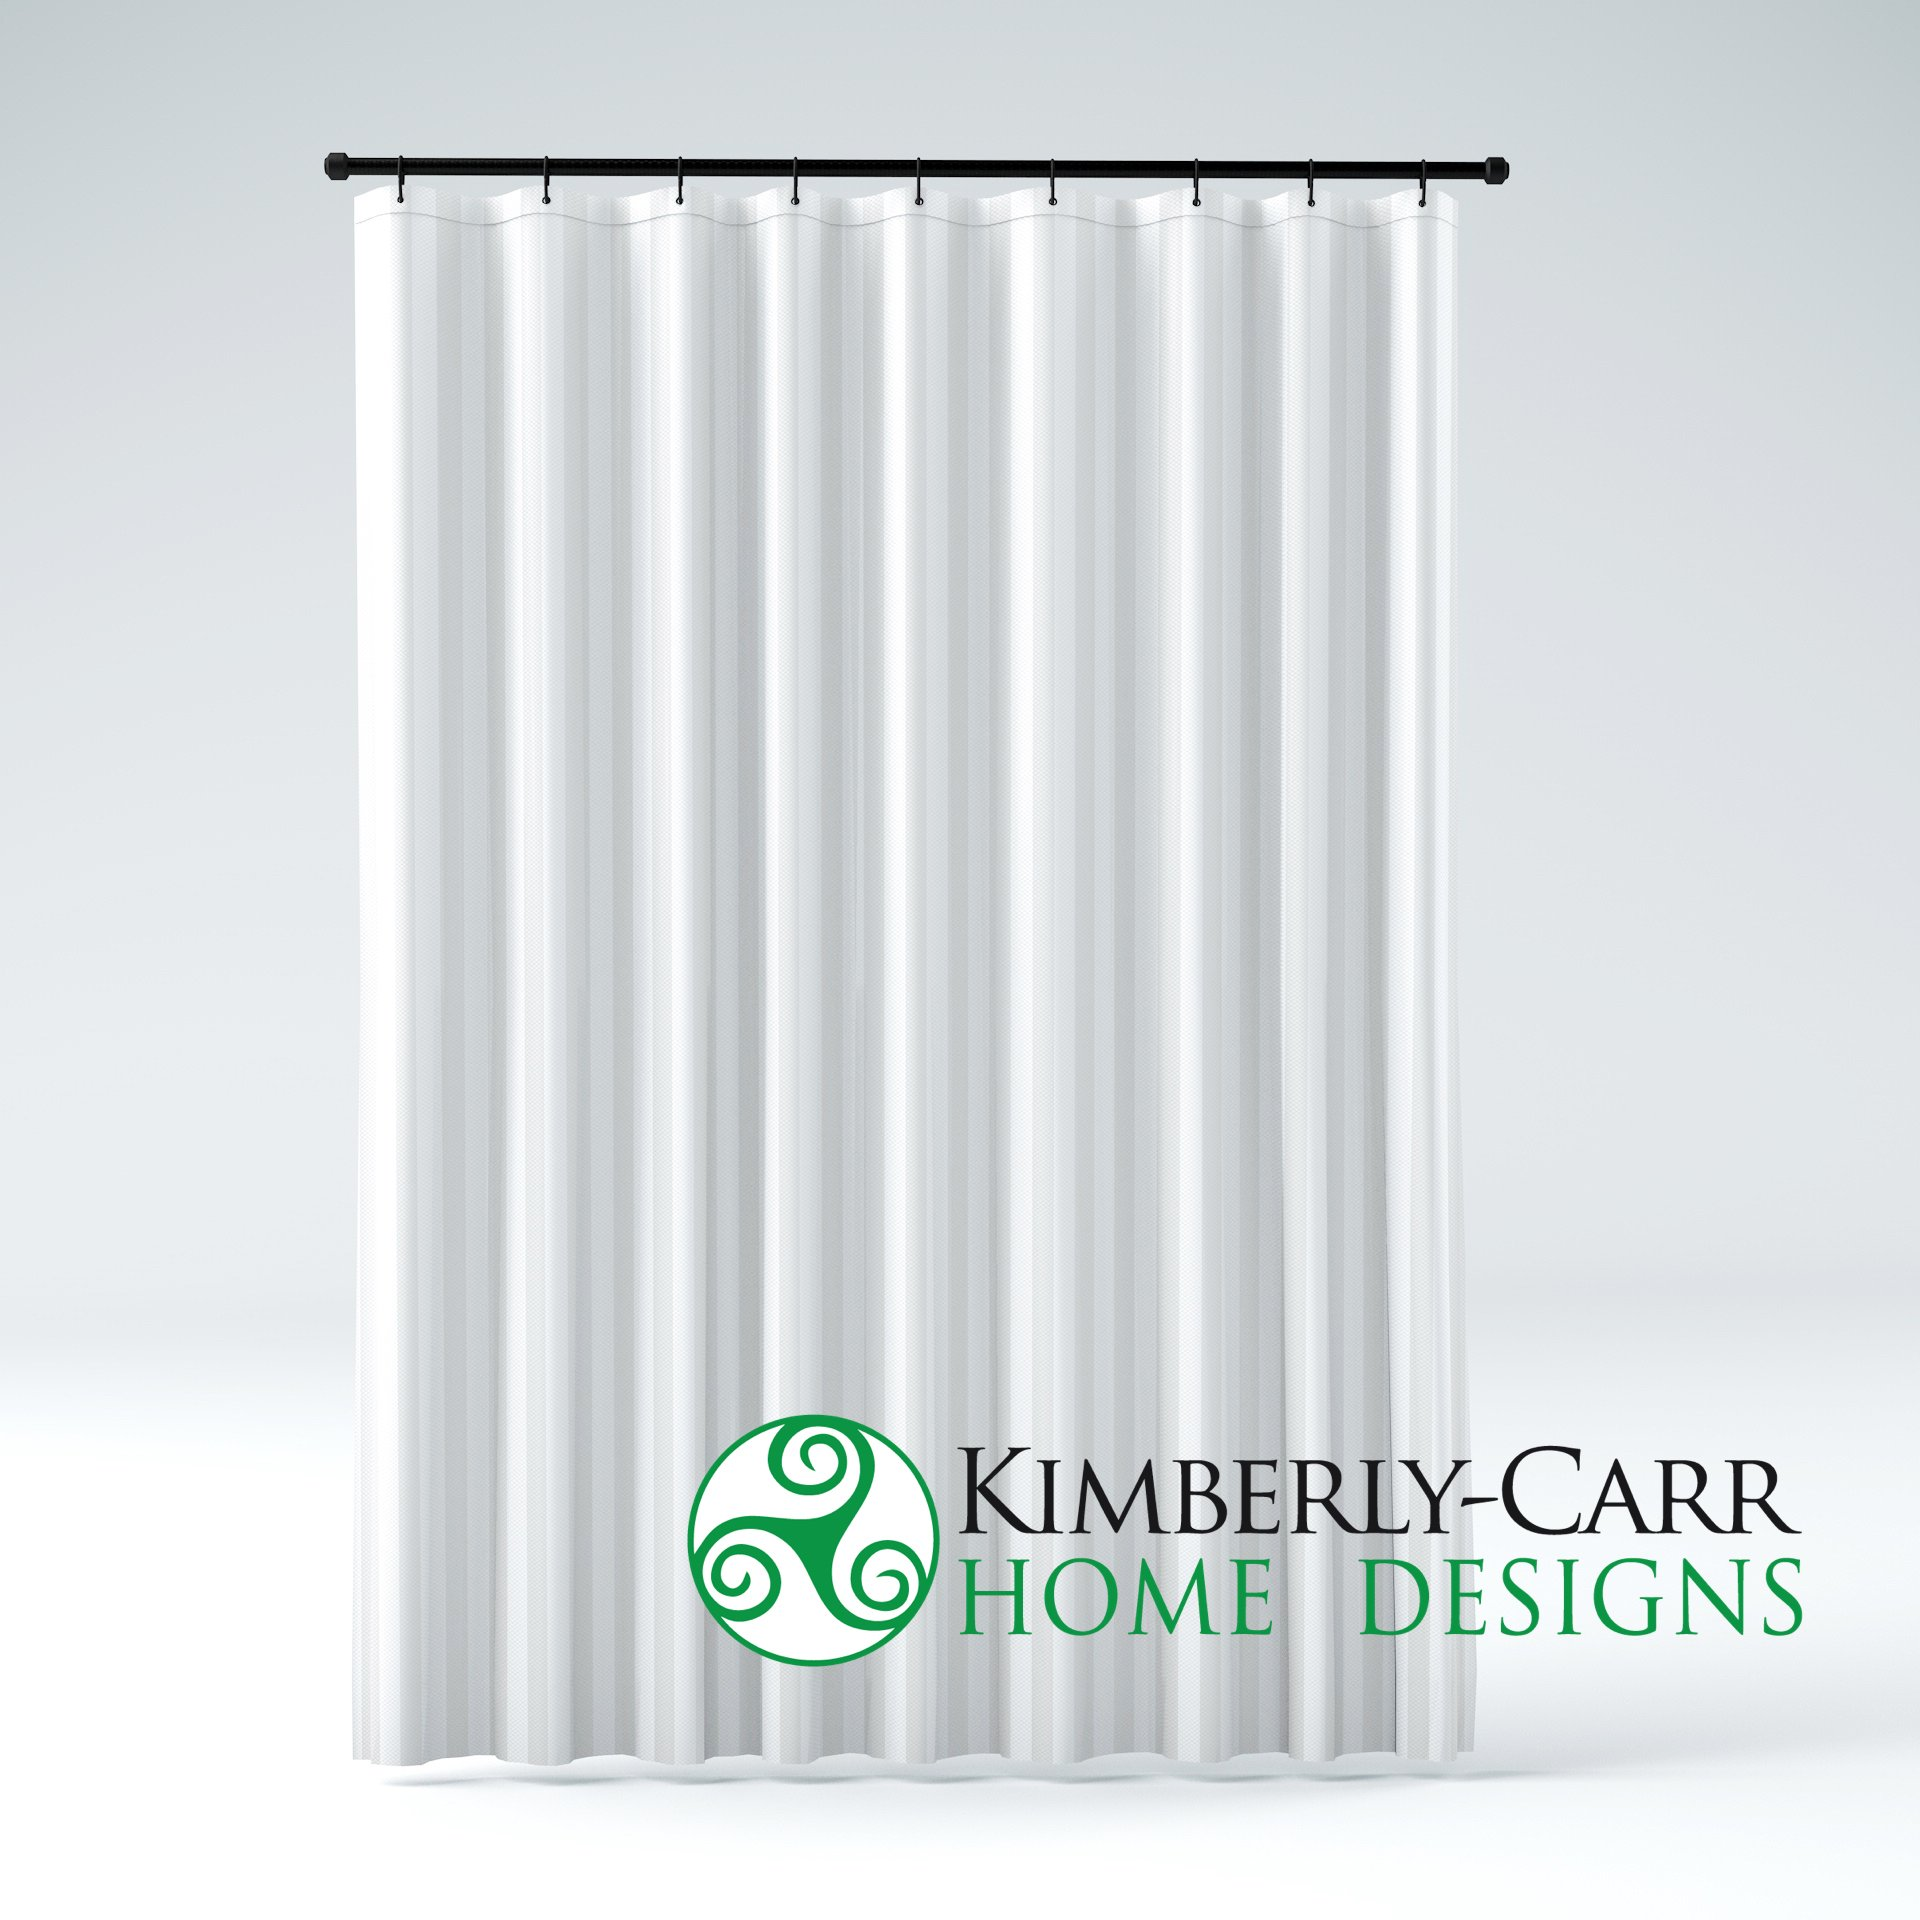 EXTRA LONG Size THE SHOWER CURTAIN LINER Hotel Quality Mildew Resistant Water-Repellent Washable Fabric, Elegant White Tonal Damask Stripe, Eco Friendly & PVC-Free (72 inches Wide by 84 inches Long)